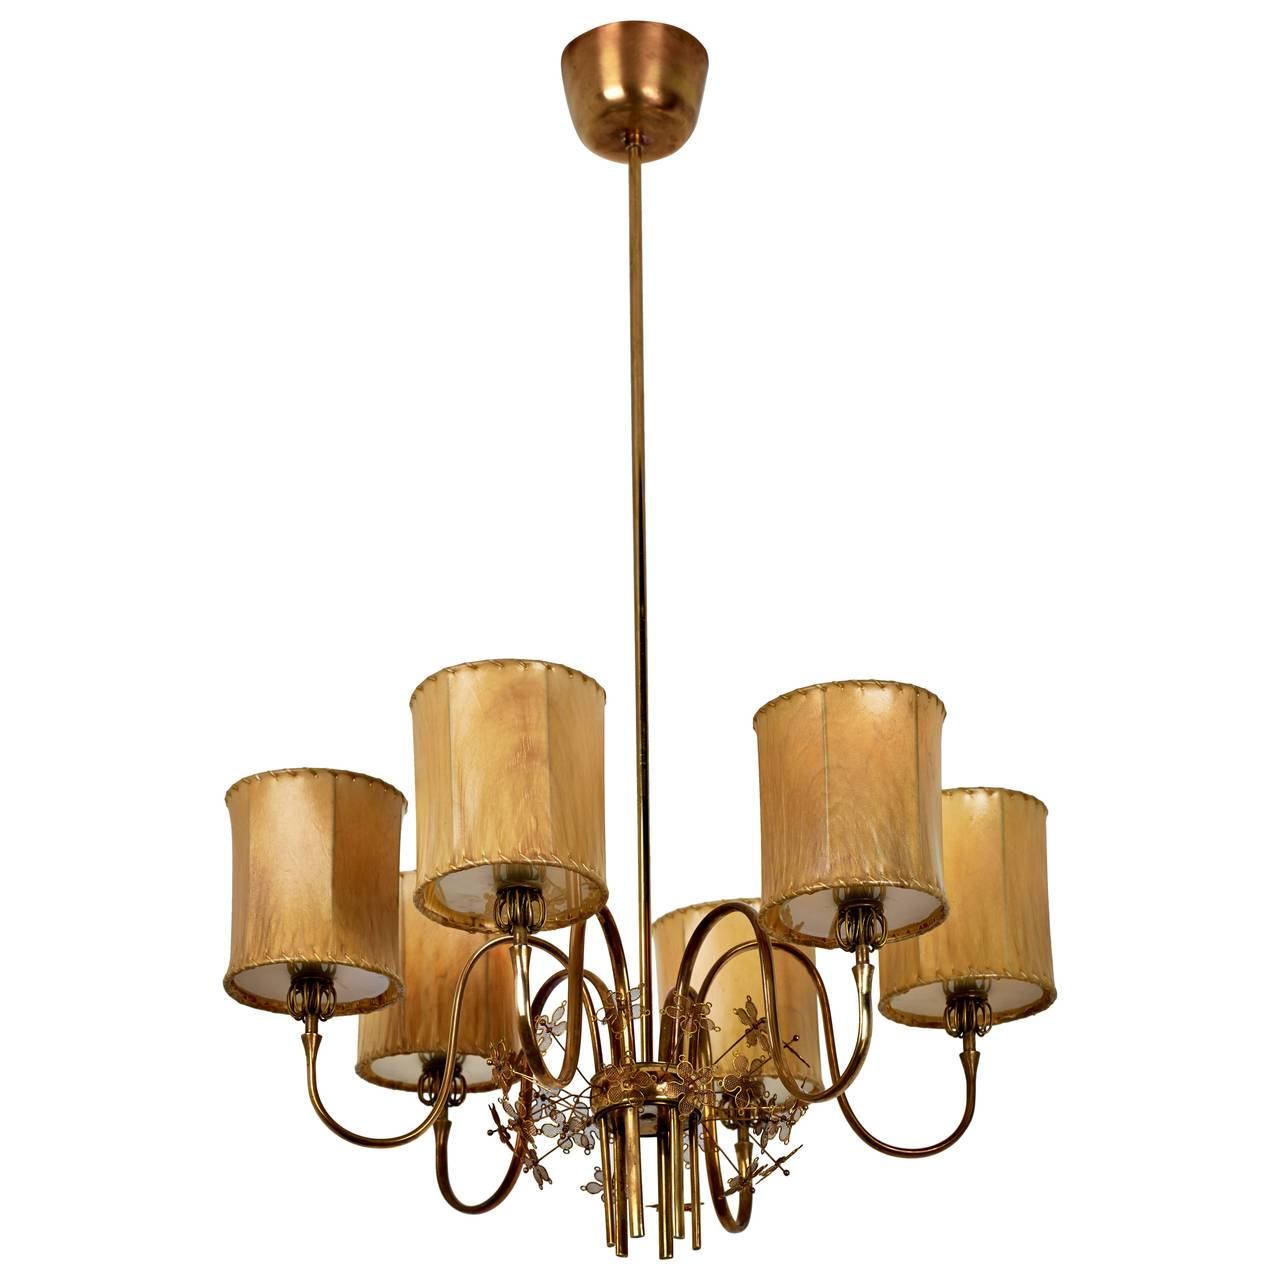 Paavo Tynell Chandelier Model No. 9013 for Taito Oy, 1940s - The Exchange Int